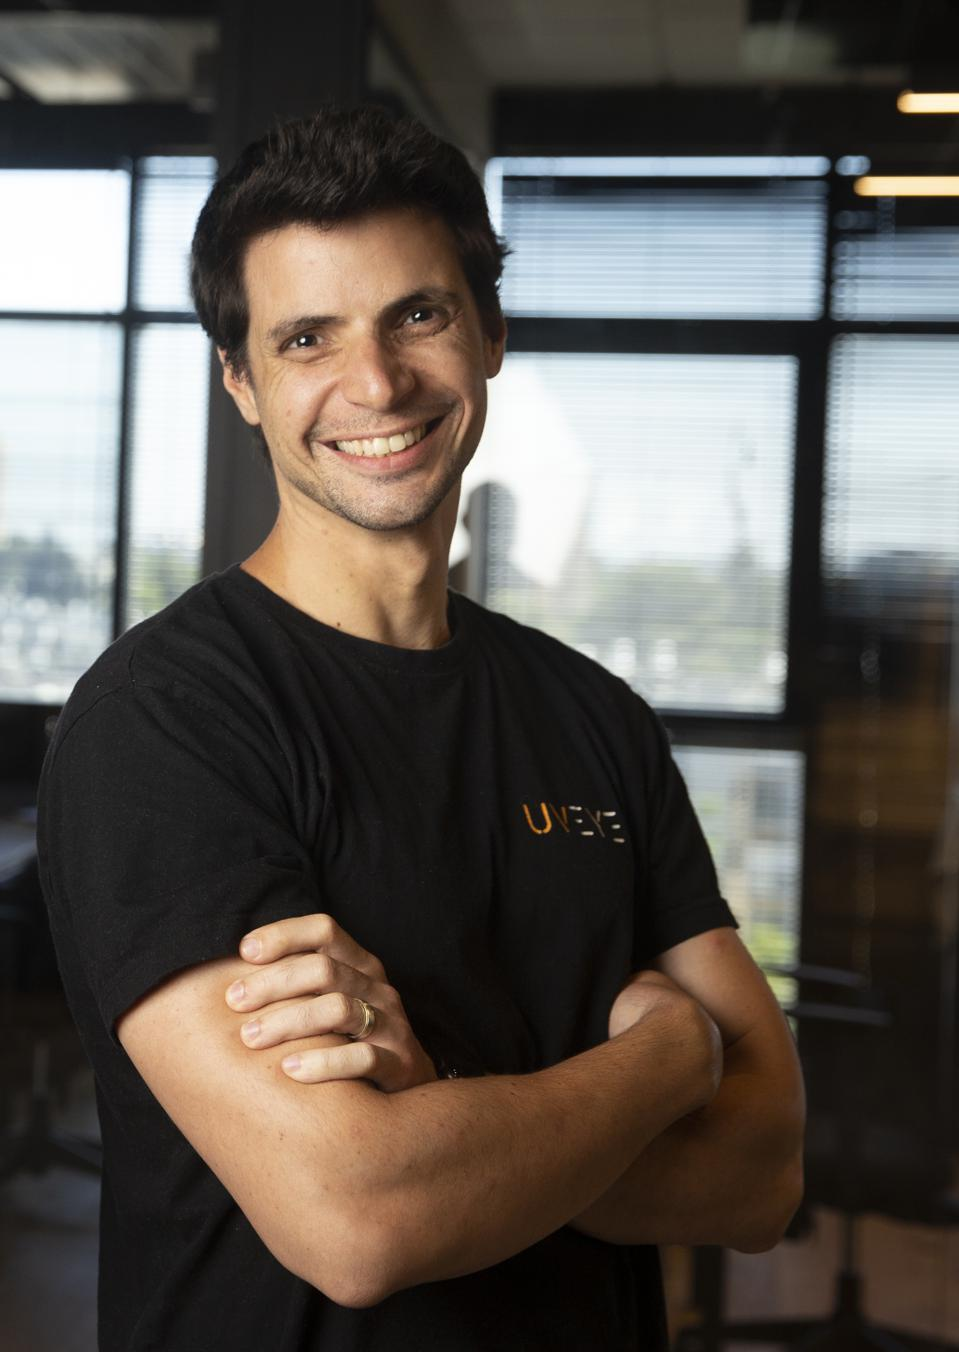 UVeye is a tech startup headquartered in Tel Aviv and Stamford, Conn.